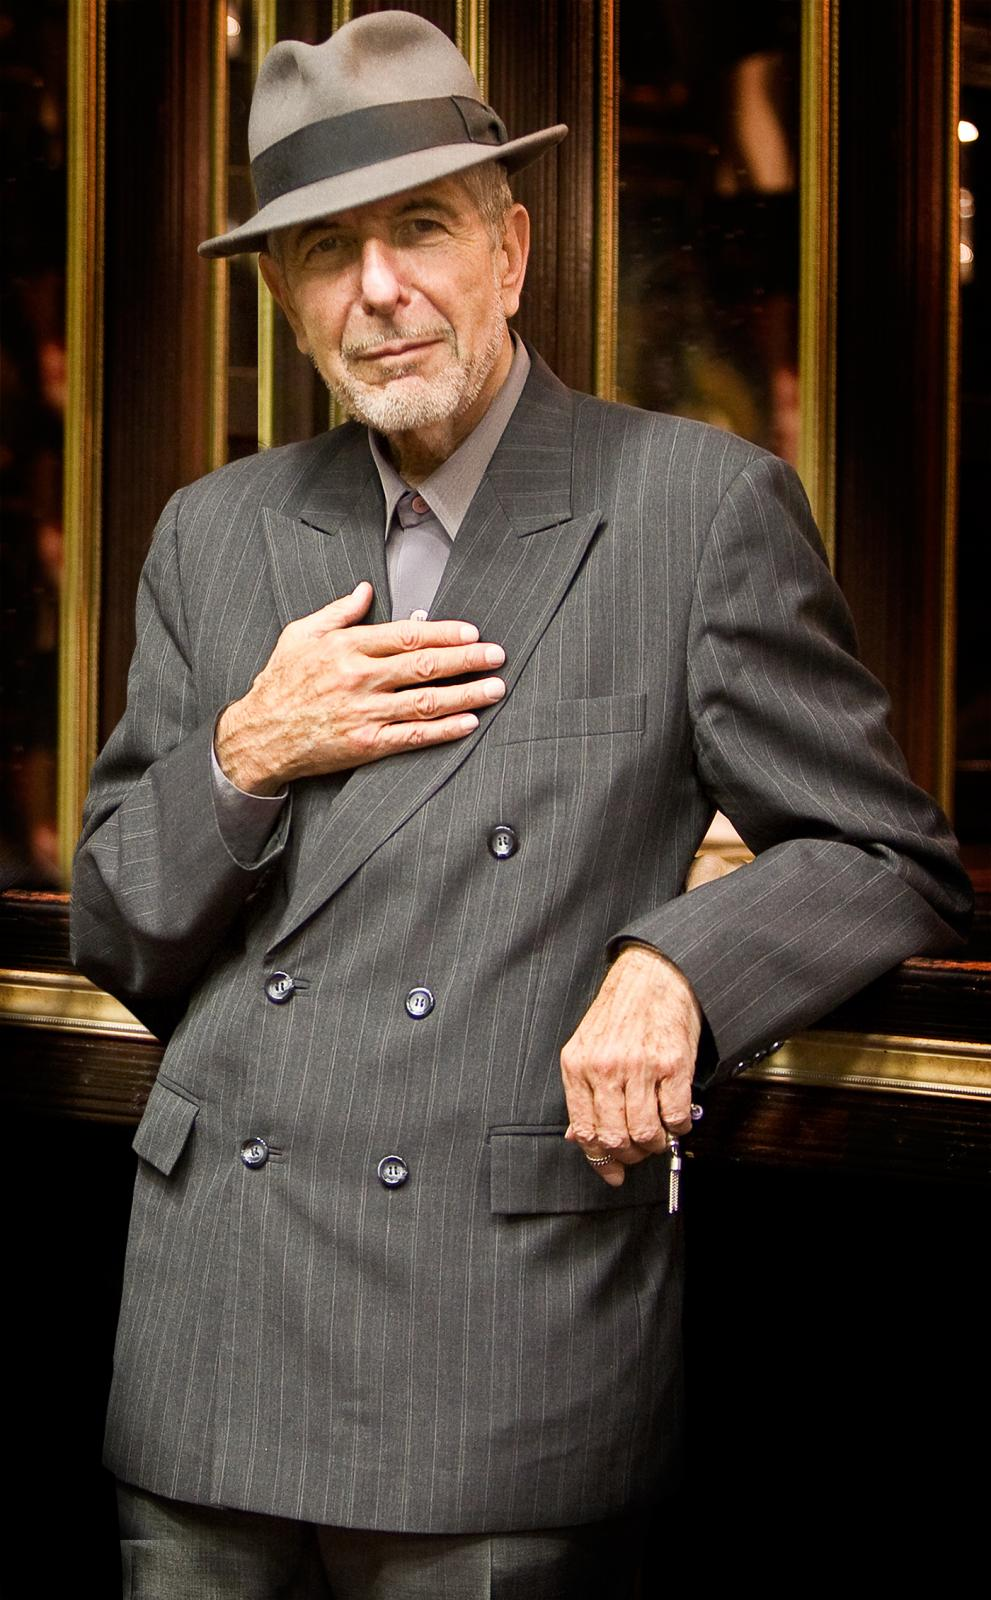 leonard cohen Leonard norman cohen (september 21, 1934 – november 7, 2016) was a canadian singer, songwriter, musician, poet, novelist, and painter his work was mostly about religion, politics, sexuality, and personal relationships most notably seen in his best known work hallelujah.